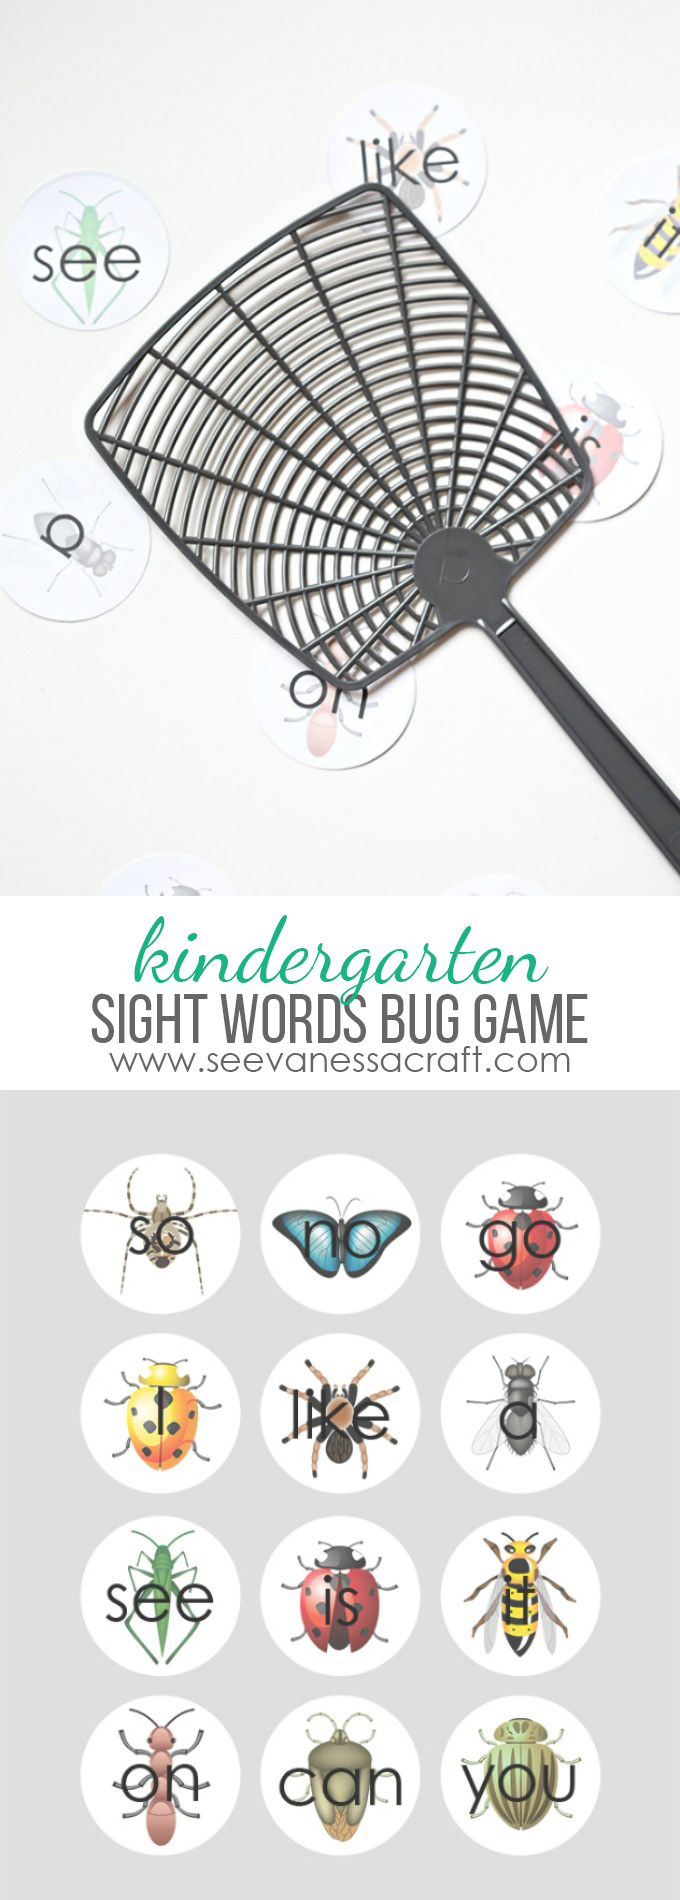 Sight Words Bug Game for Kindergarten